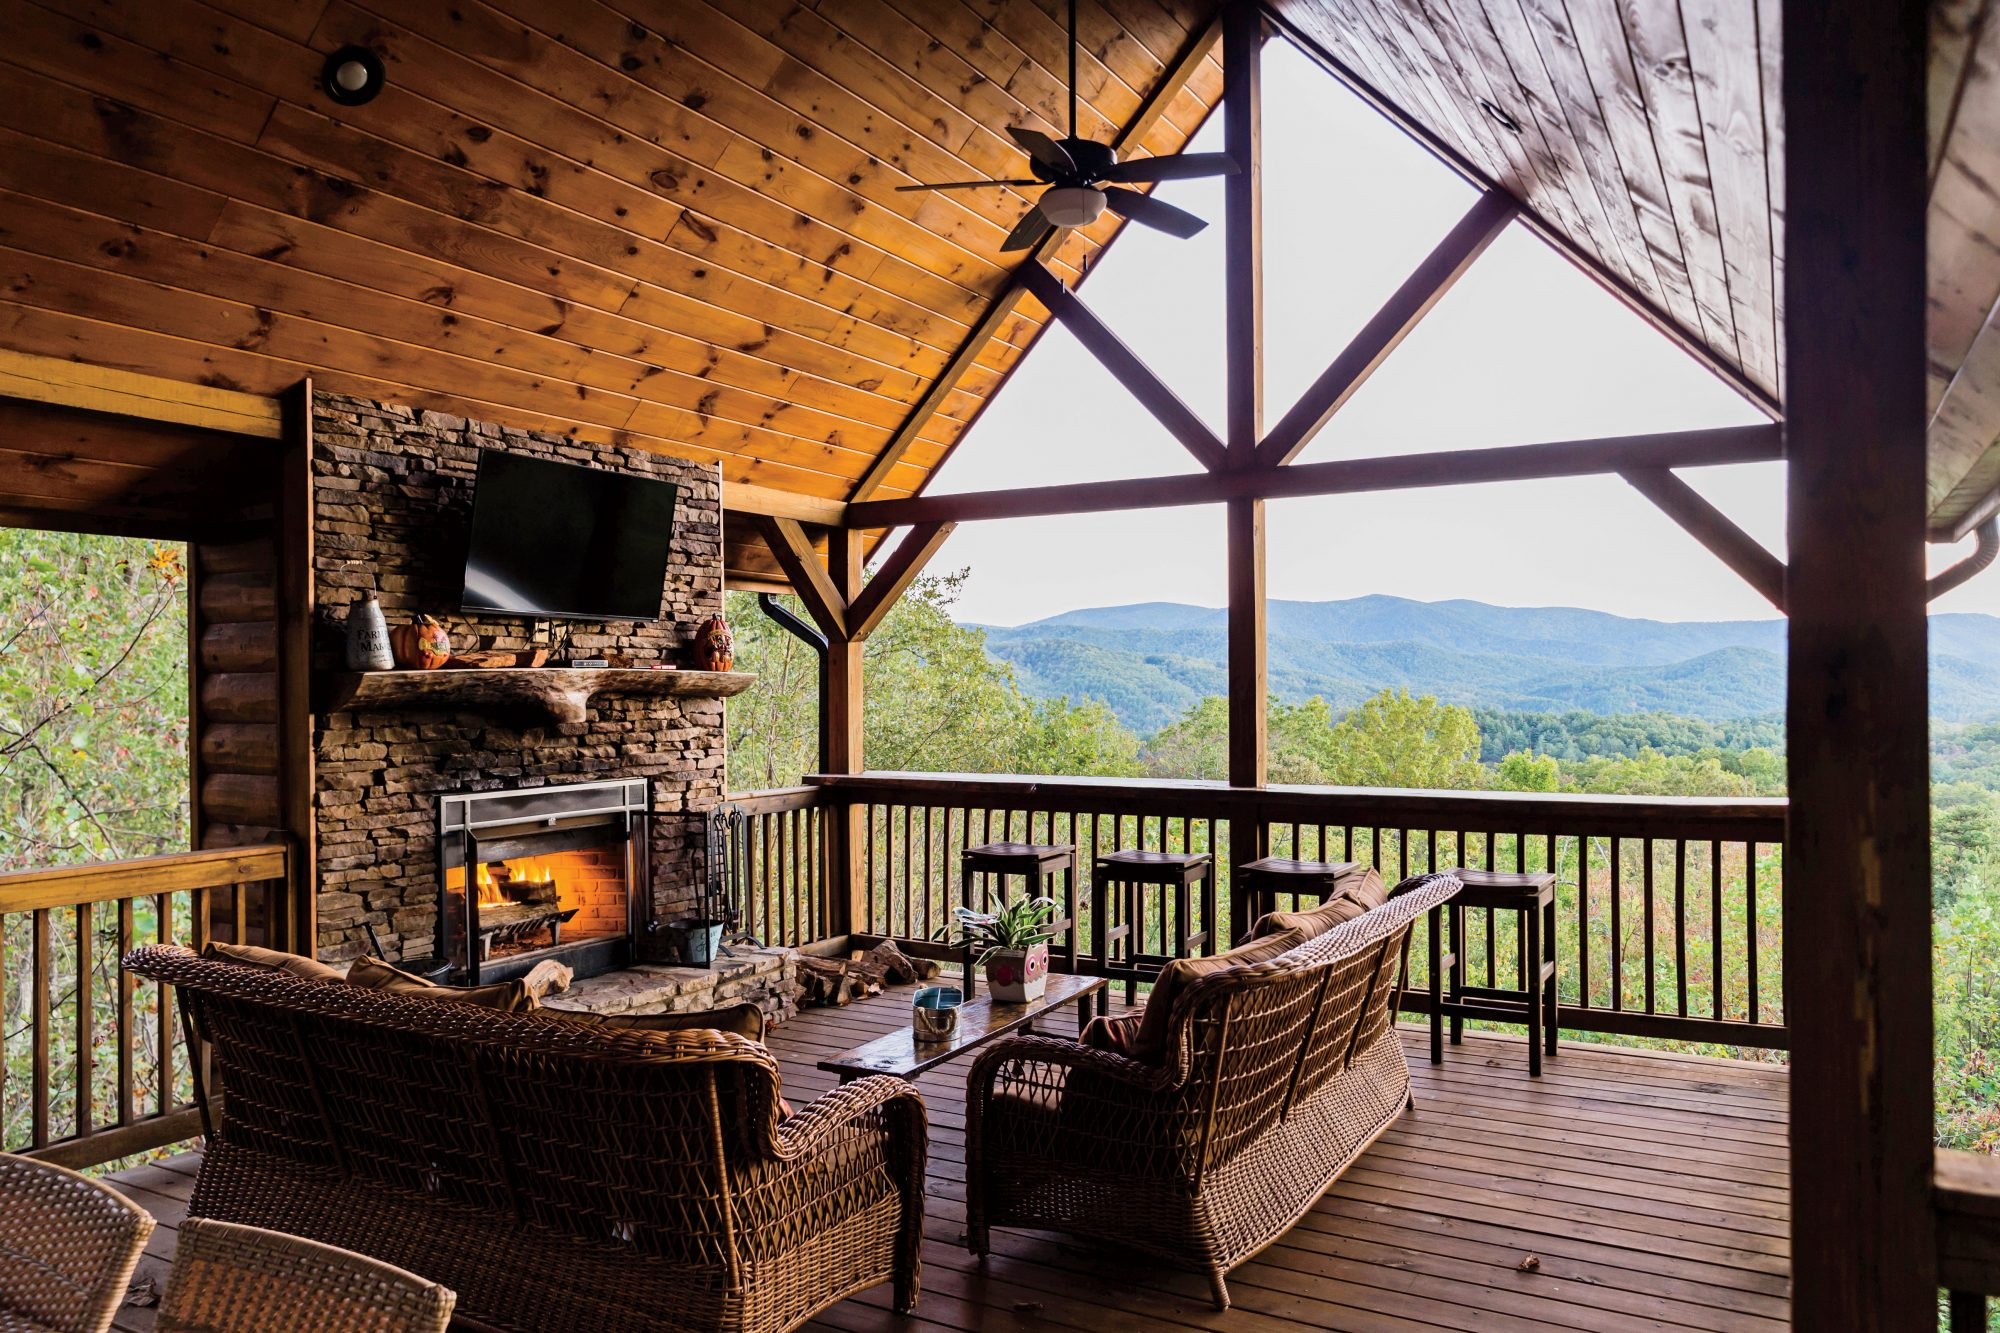 Mountain Top Cabin Rentals in Blue Ridge Mountains